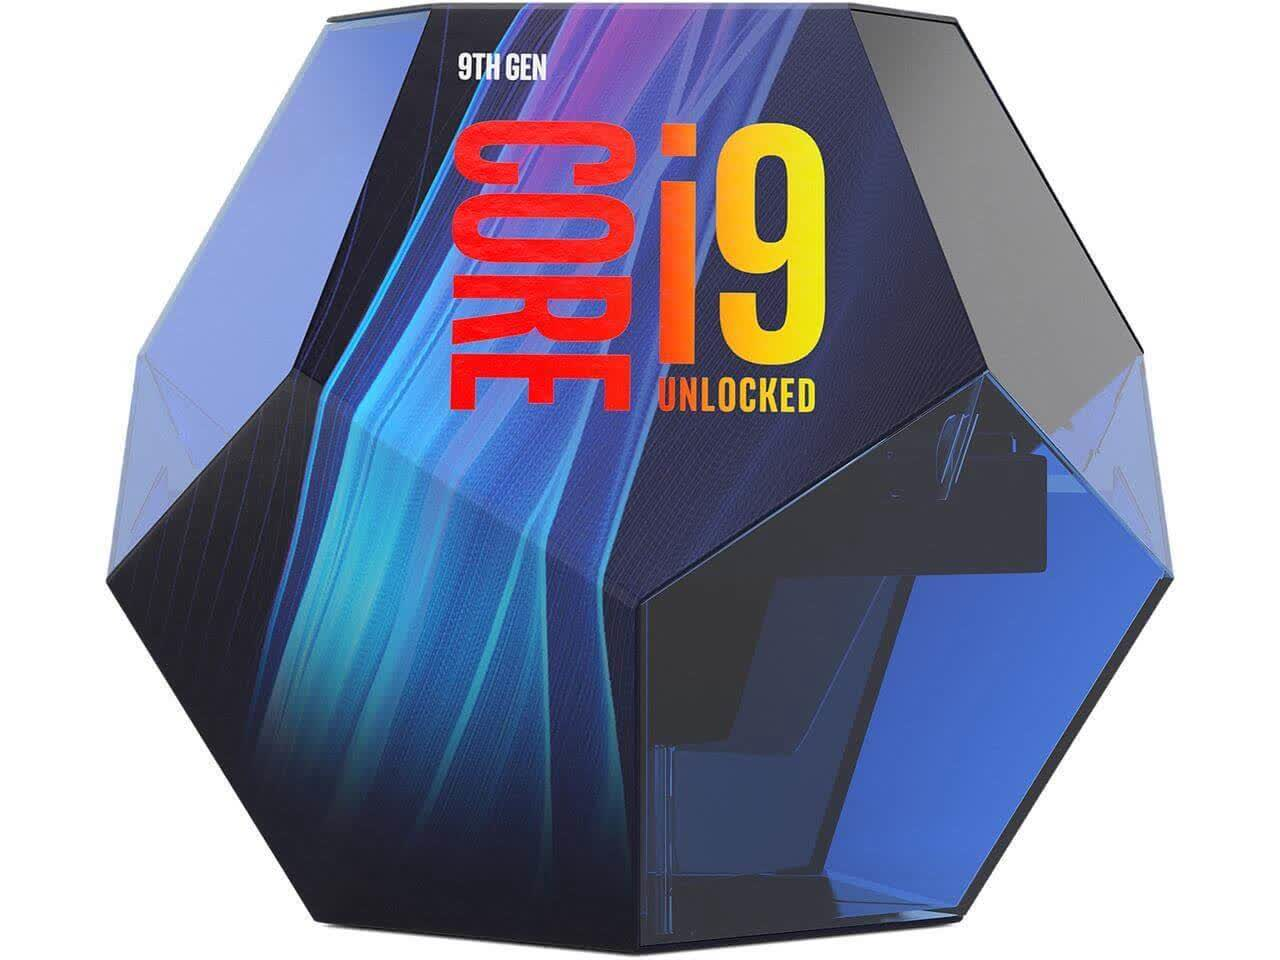 Intel Core i9 9900KF 3.6GHz Socket 1151